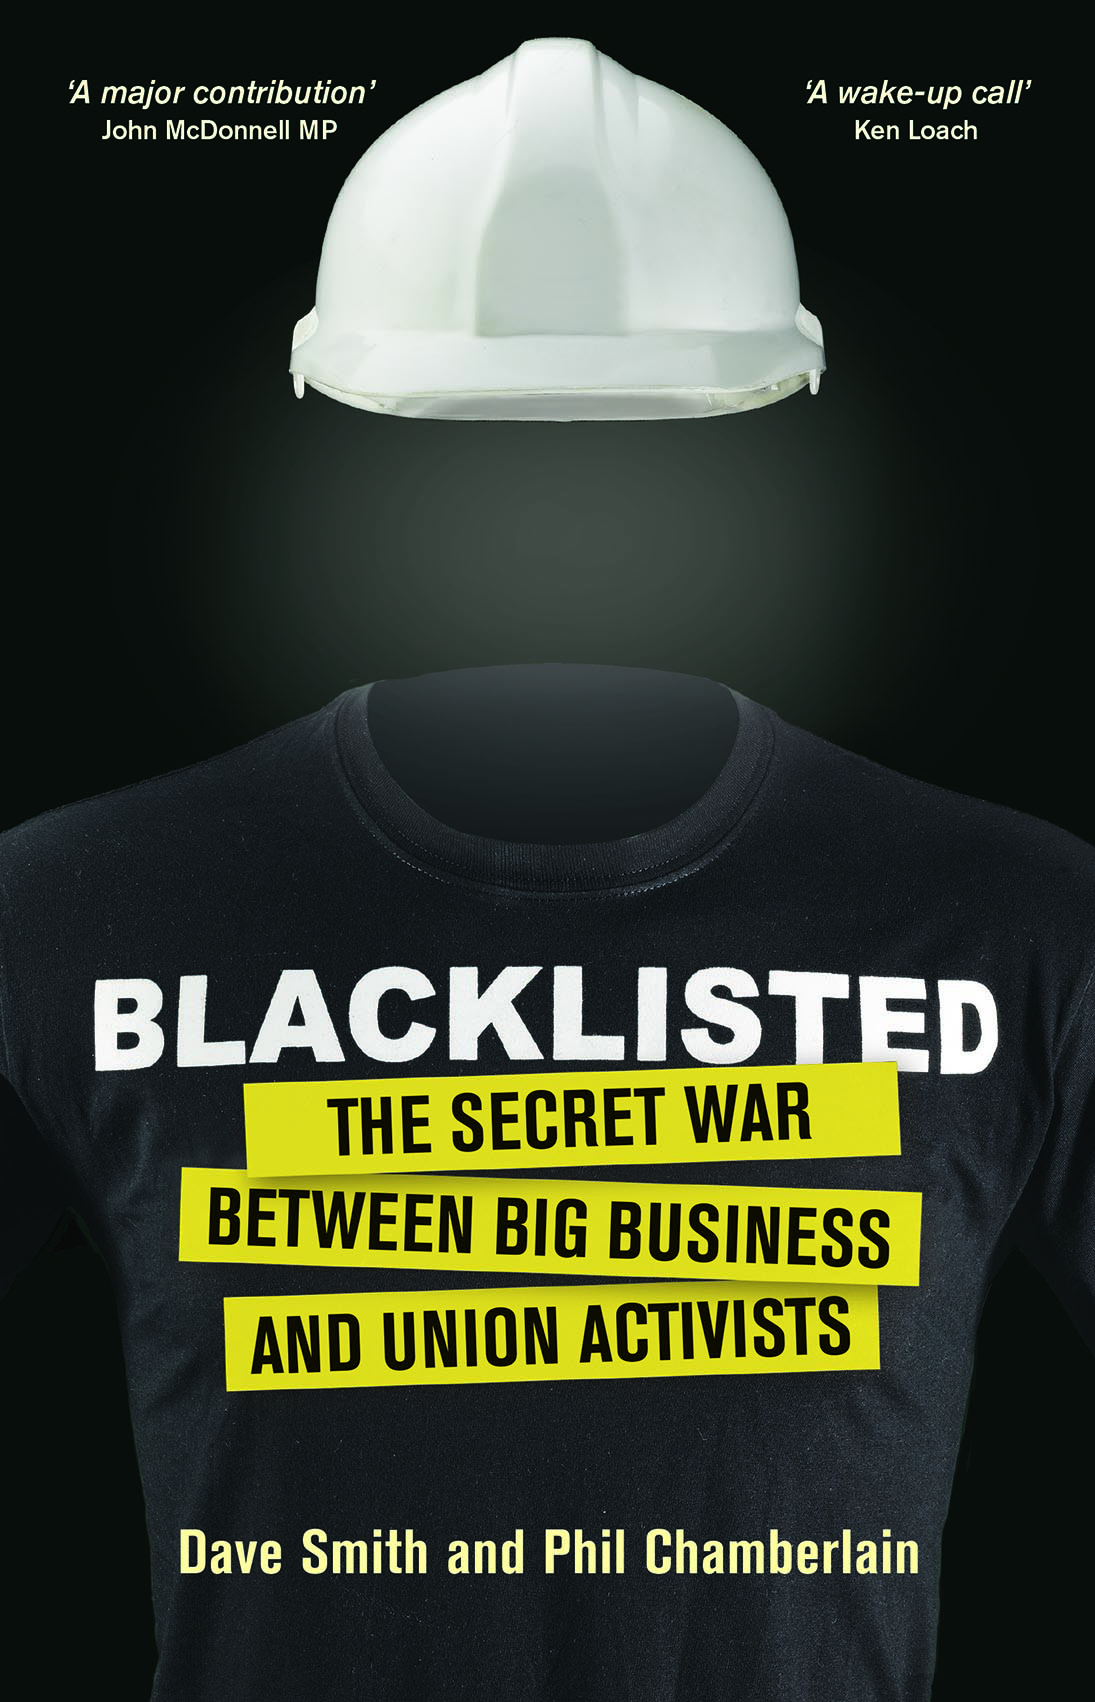 Blacklisted The Secret War between Big Business and Union Activists